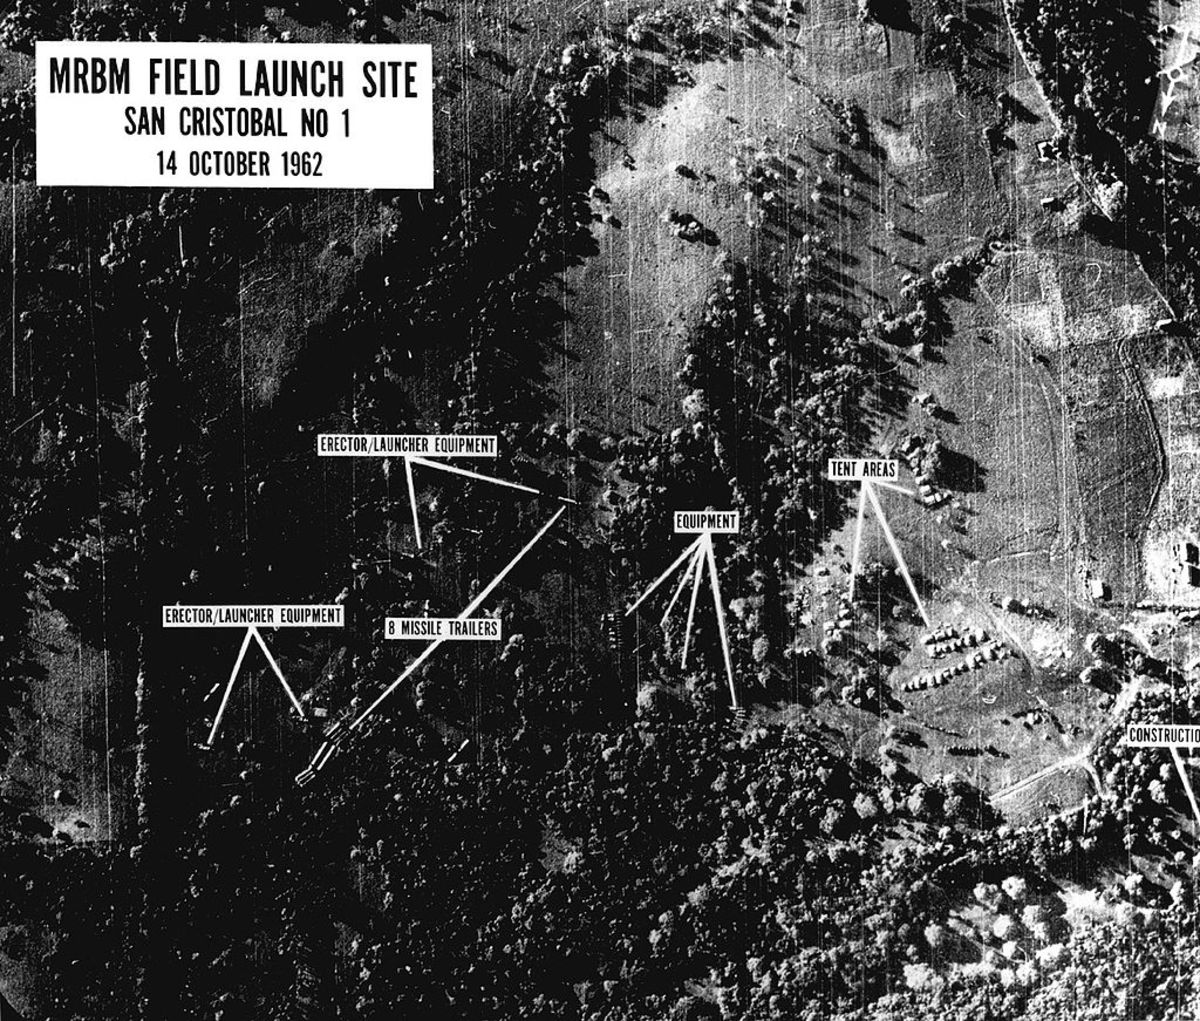 U-2 Spy Plane Images of Cuban Missile Sites.